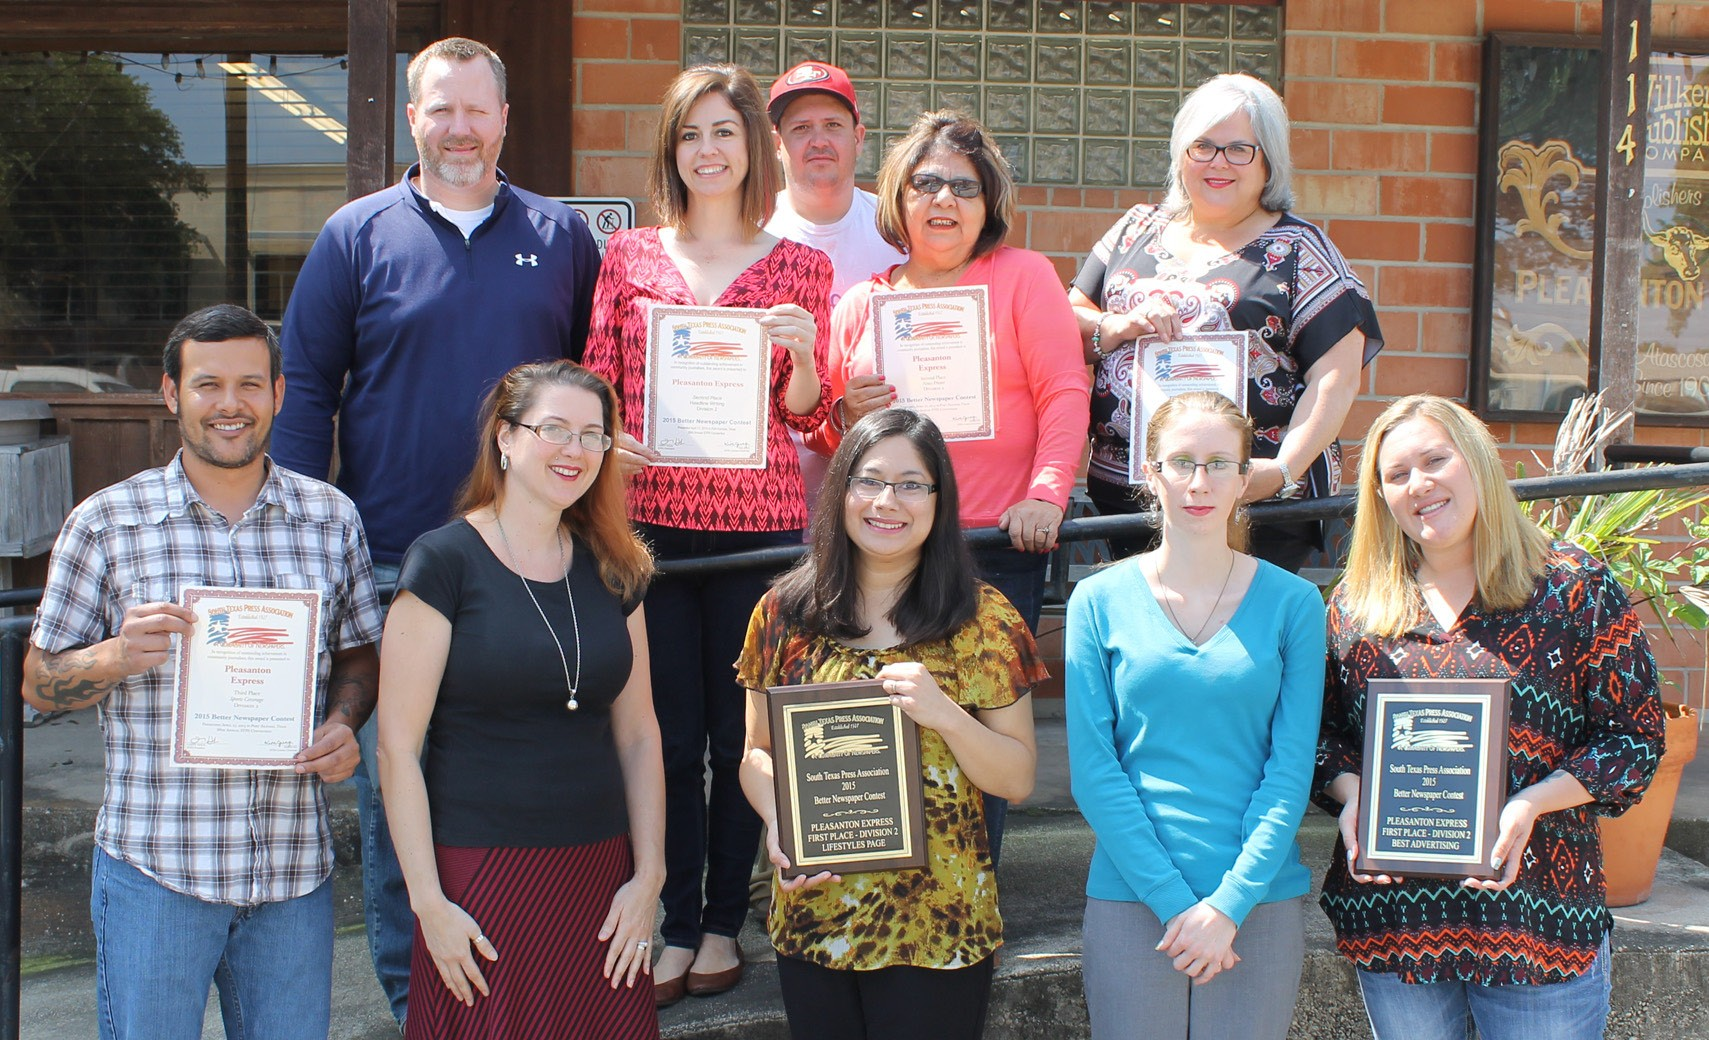 The Pleasanton Express staff brought home six awards from the South Texas Press Association Better Newspaper contest held last week. Left to right, front row are Sports Editor Chris Filoteo with the third place certificate for Sports Coverage, Business/Classified/Circulation Manager Rhonda Chancellor, Living Editor Lisa Luna with the plaque for first place in Lifestyle Pages, Katelyn Scott (Ads/Imaging) and Advertising Manager Megan Benishek with the first place plaque for Display Advertising. Second row are James Sharp (Advertising Representative), Ag and Obits Editor/Columnist Robbie Hamby with the second place Headline Writing certificate, Aaron Davidson (Ads/Imaging); Newsroom Manager Hope Garza with the second place News Photo and Editor Sue Brown holding the second place certificate for General Excellence. Missing from the photo is Leon Zabava, Oil and Gas Editor. The Express came in second overall in the Sweepstakes division, too.